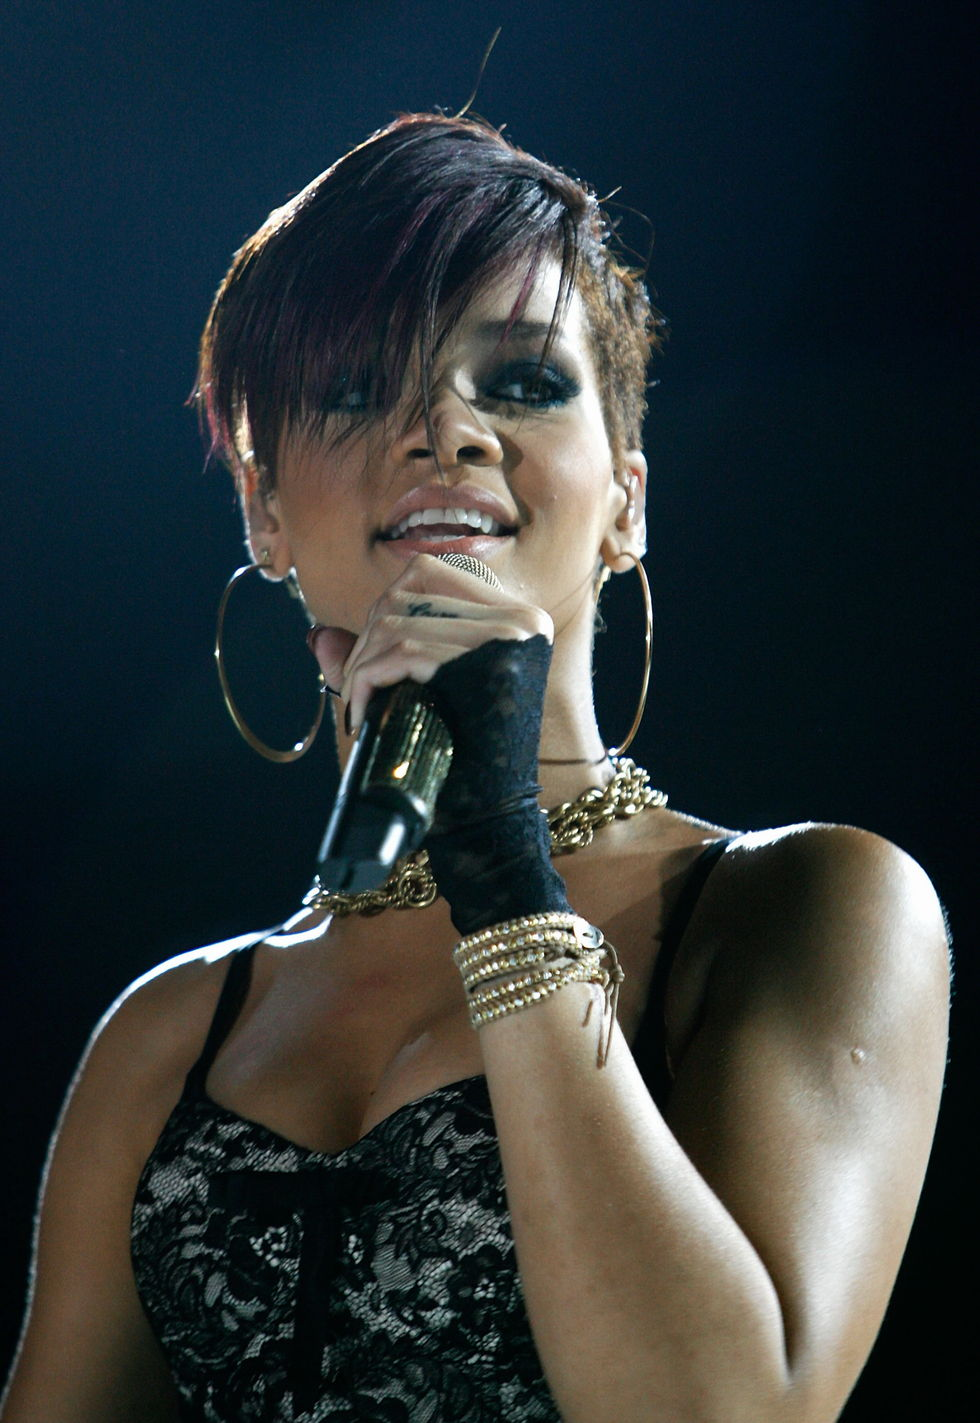 rihanna-performs-at-the-2008-essence-music-festival-in-new-orleans-04